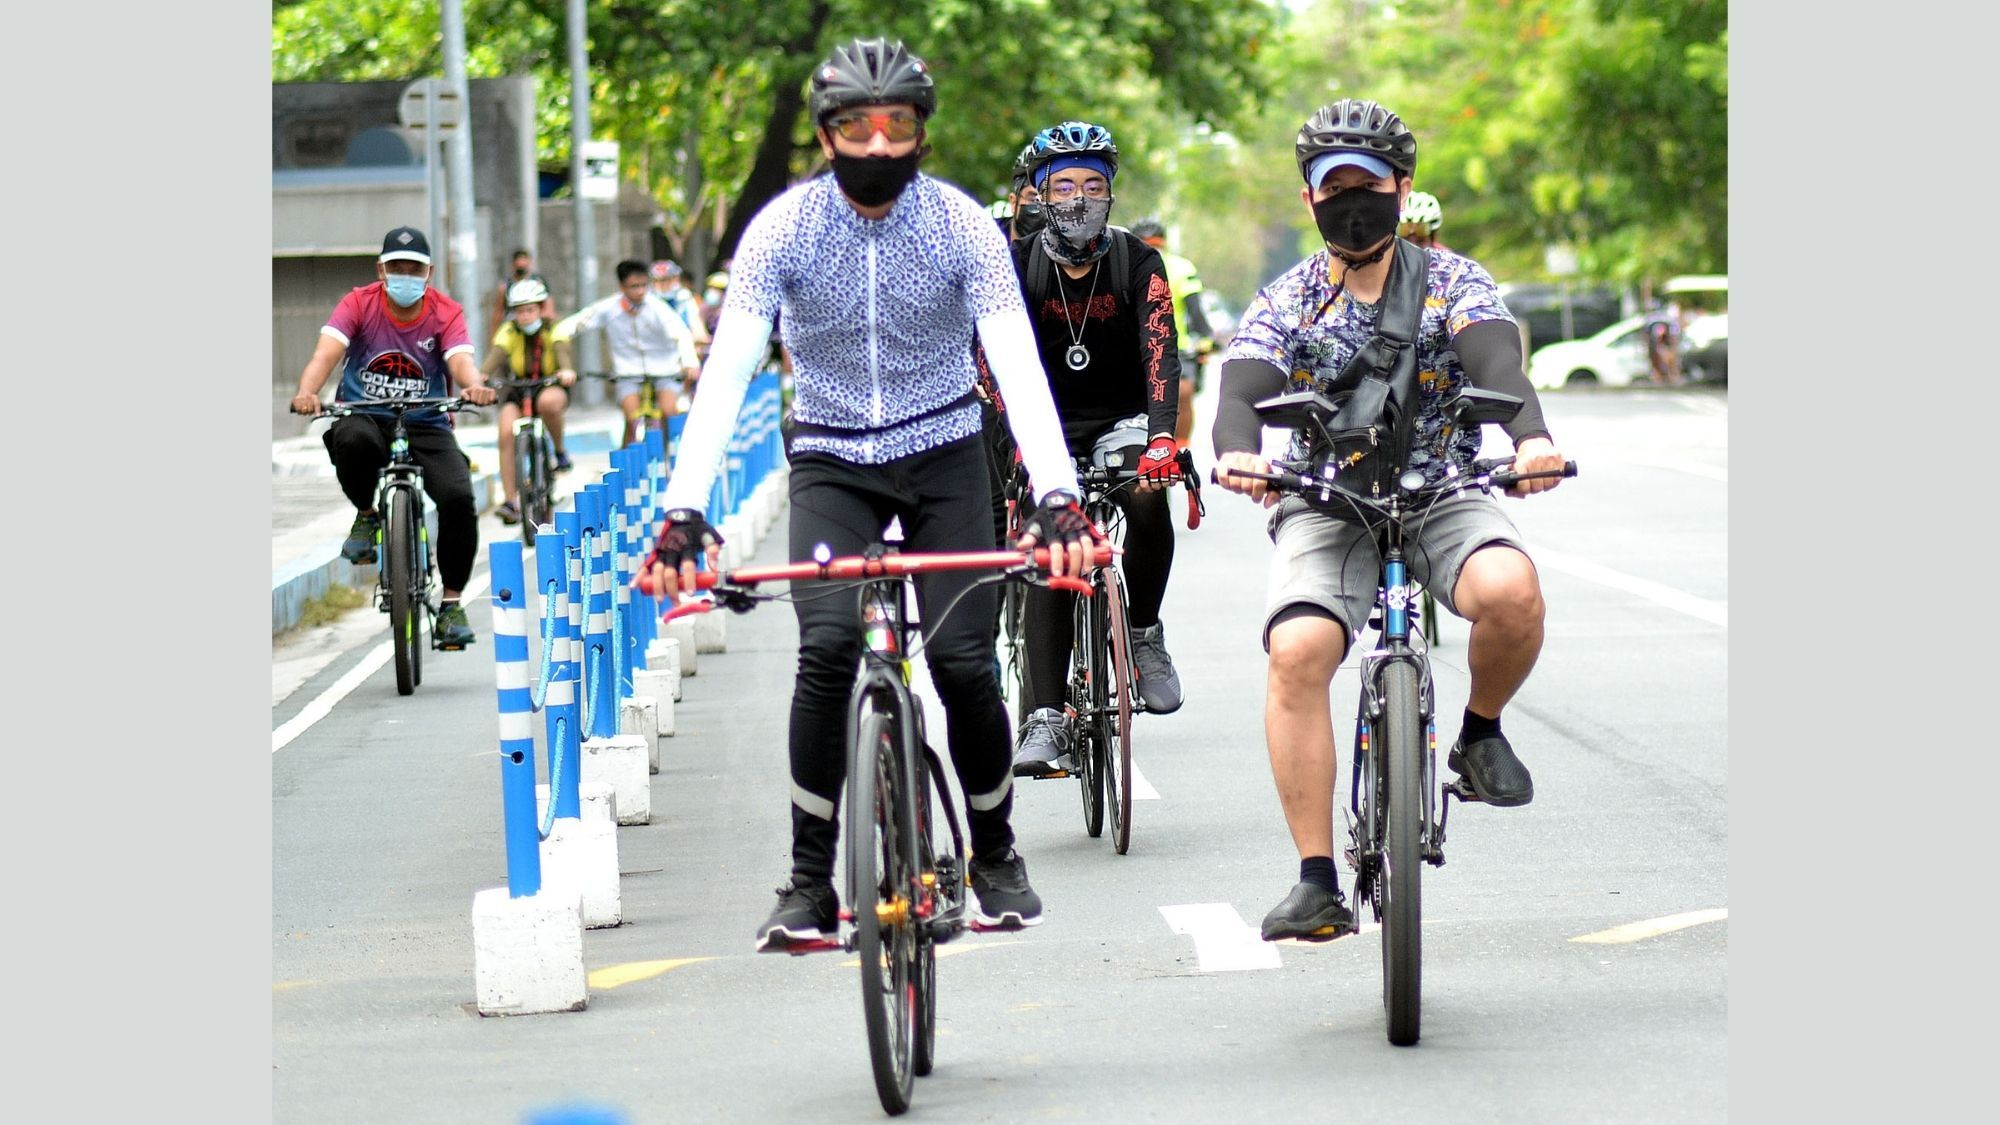 BIKERS FOR THE ENVIRONMENT